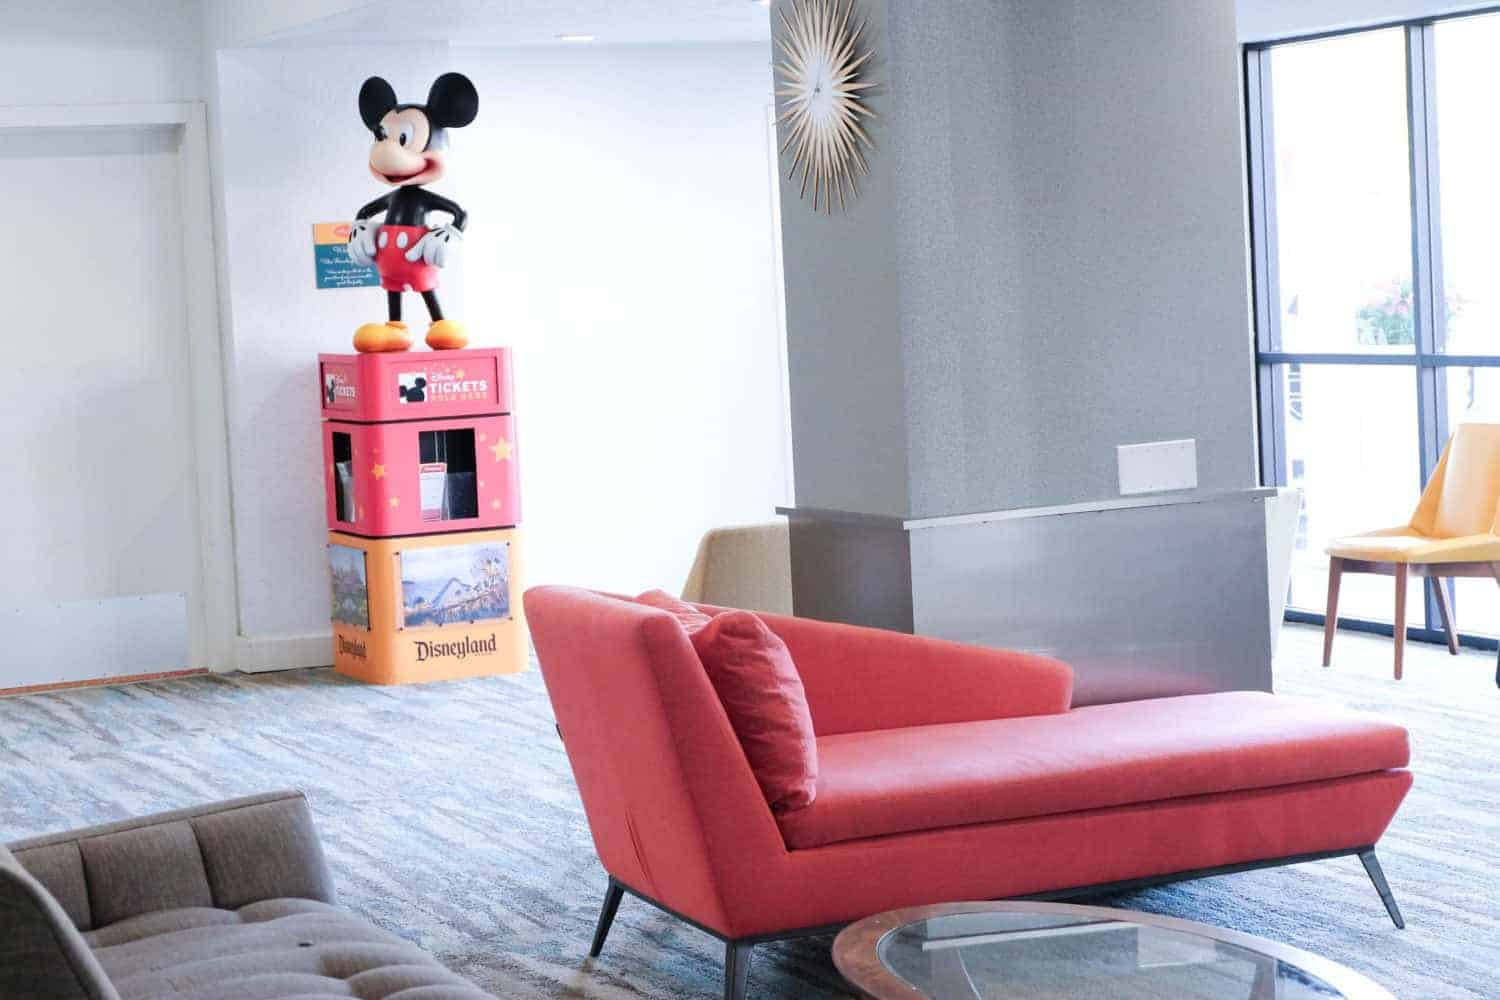 The Anaheim Hotel: A Disneyland Area Hotel Review